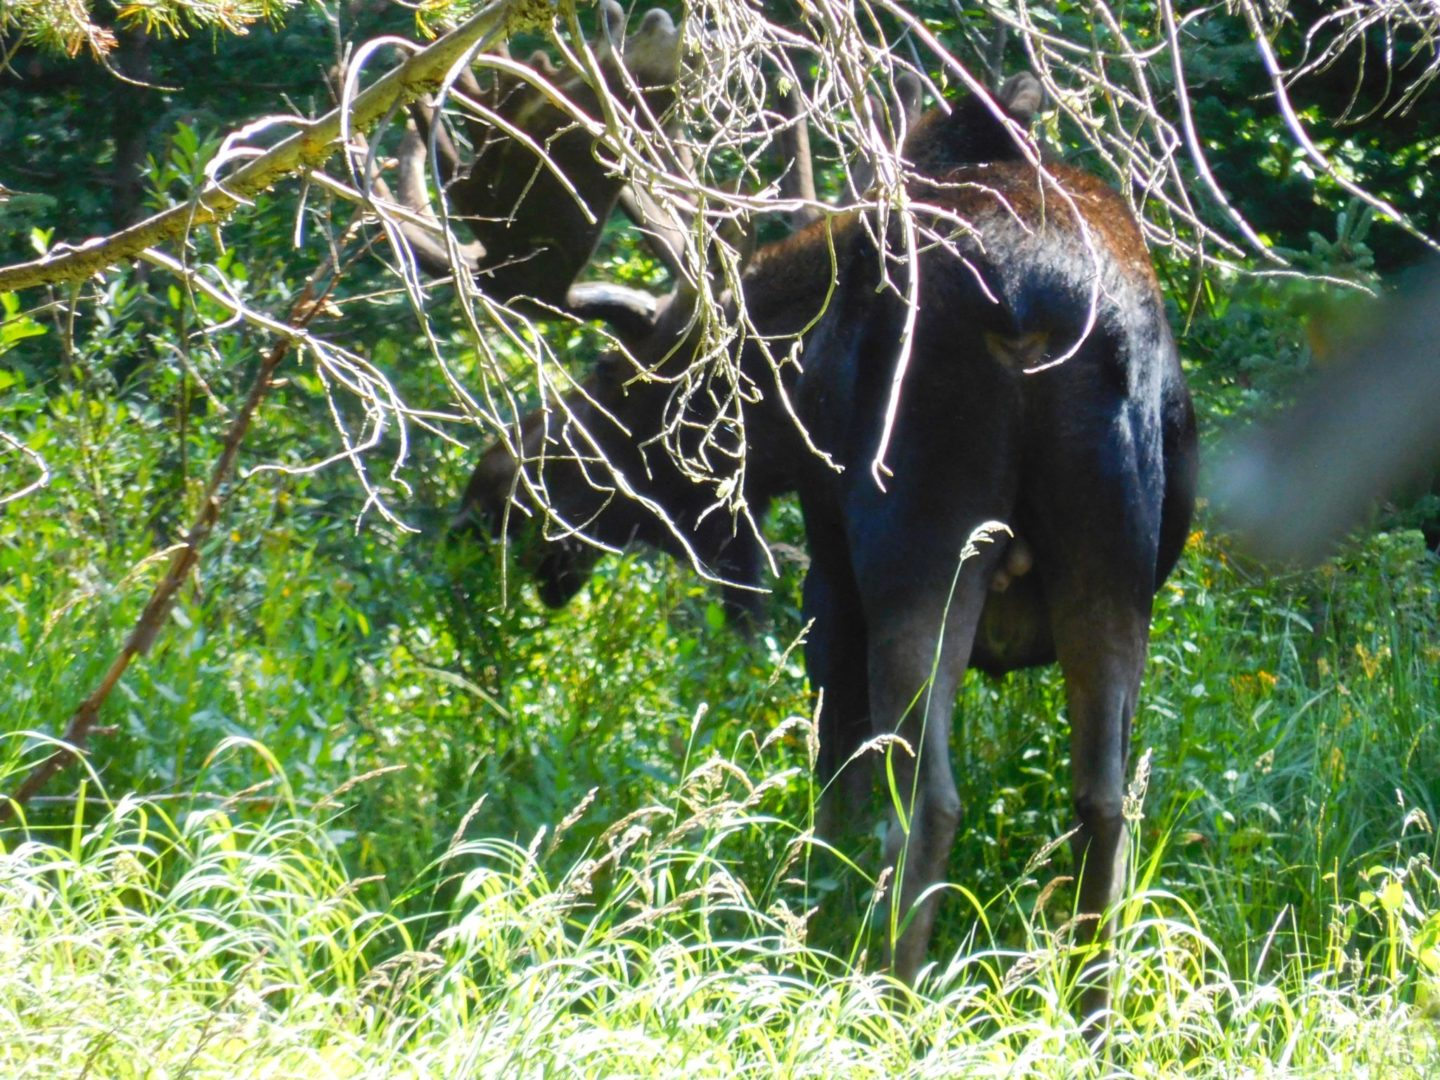 A moose in the thick underbrush